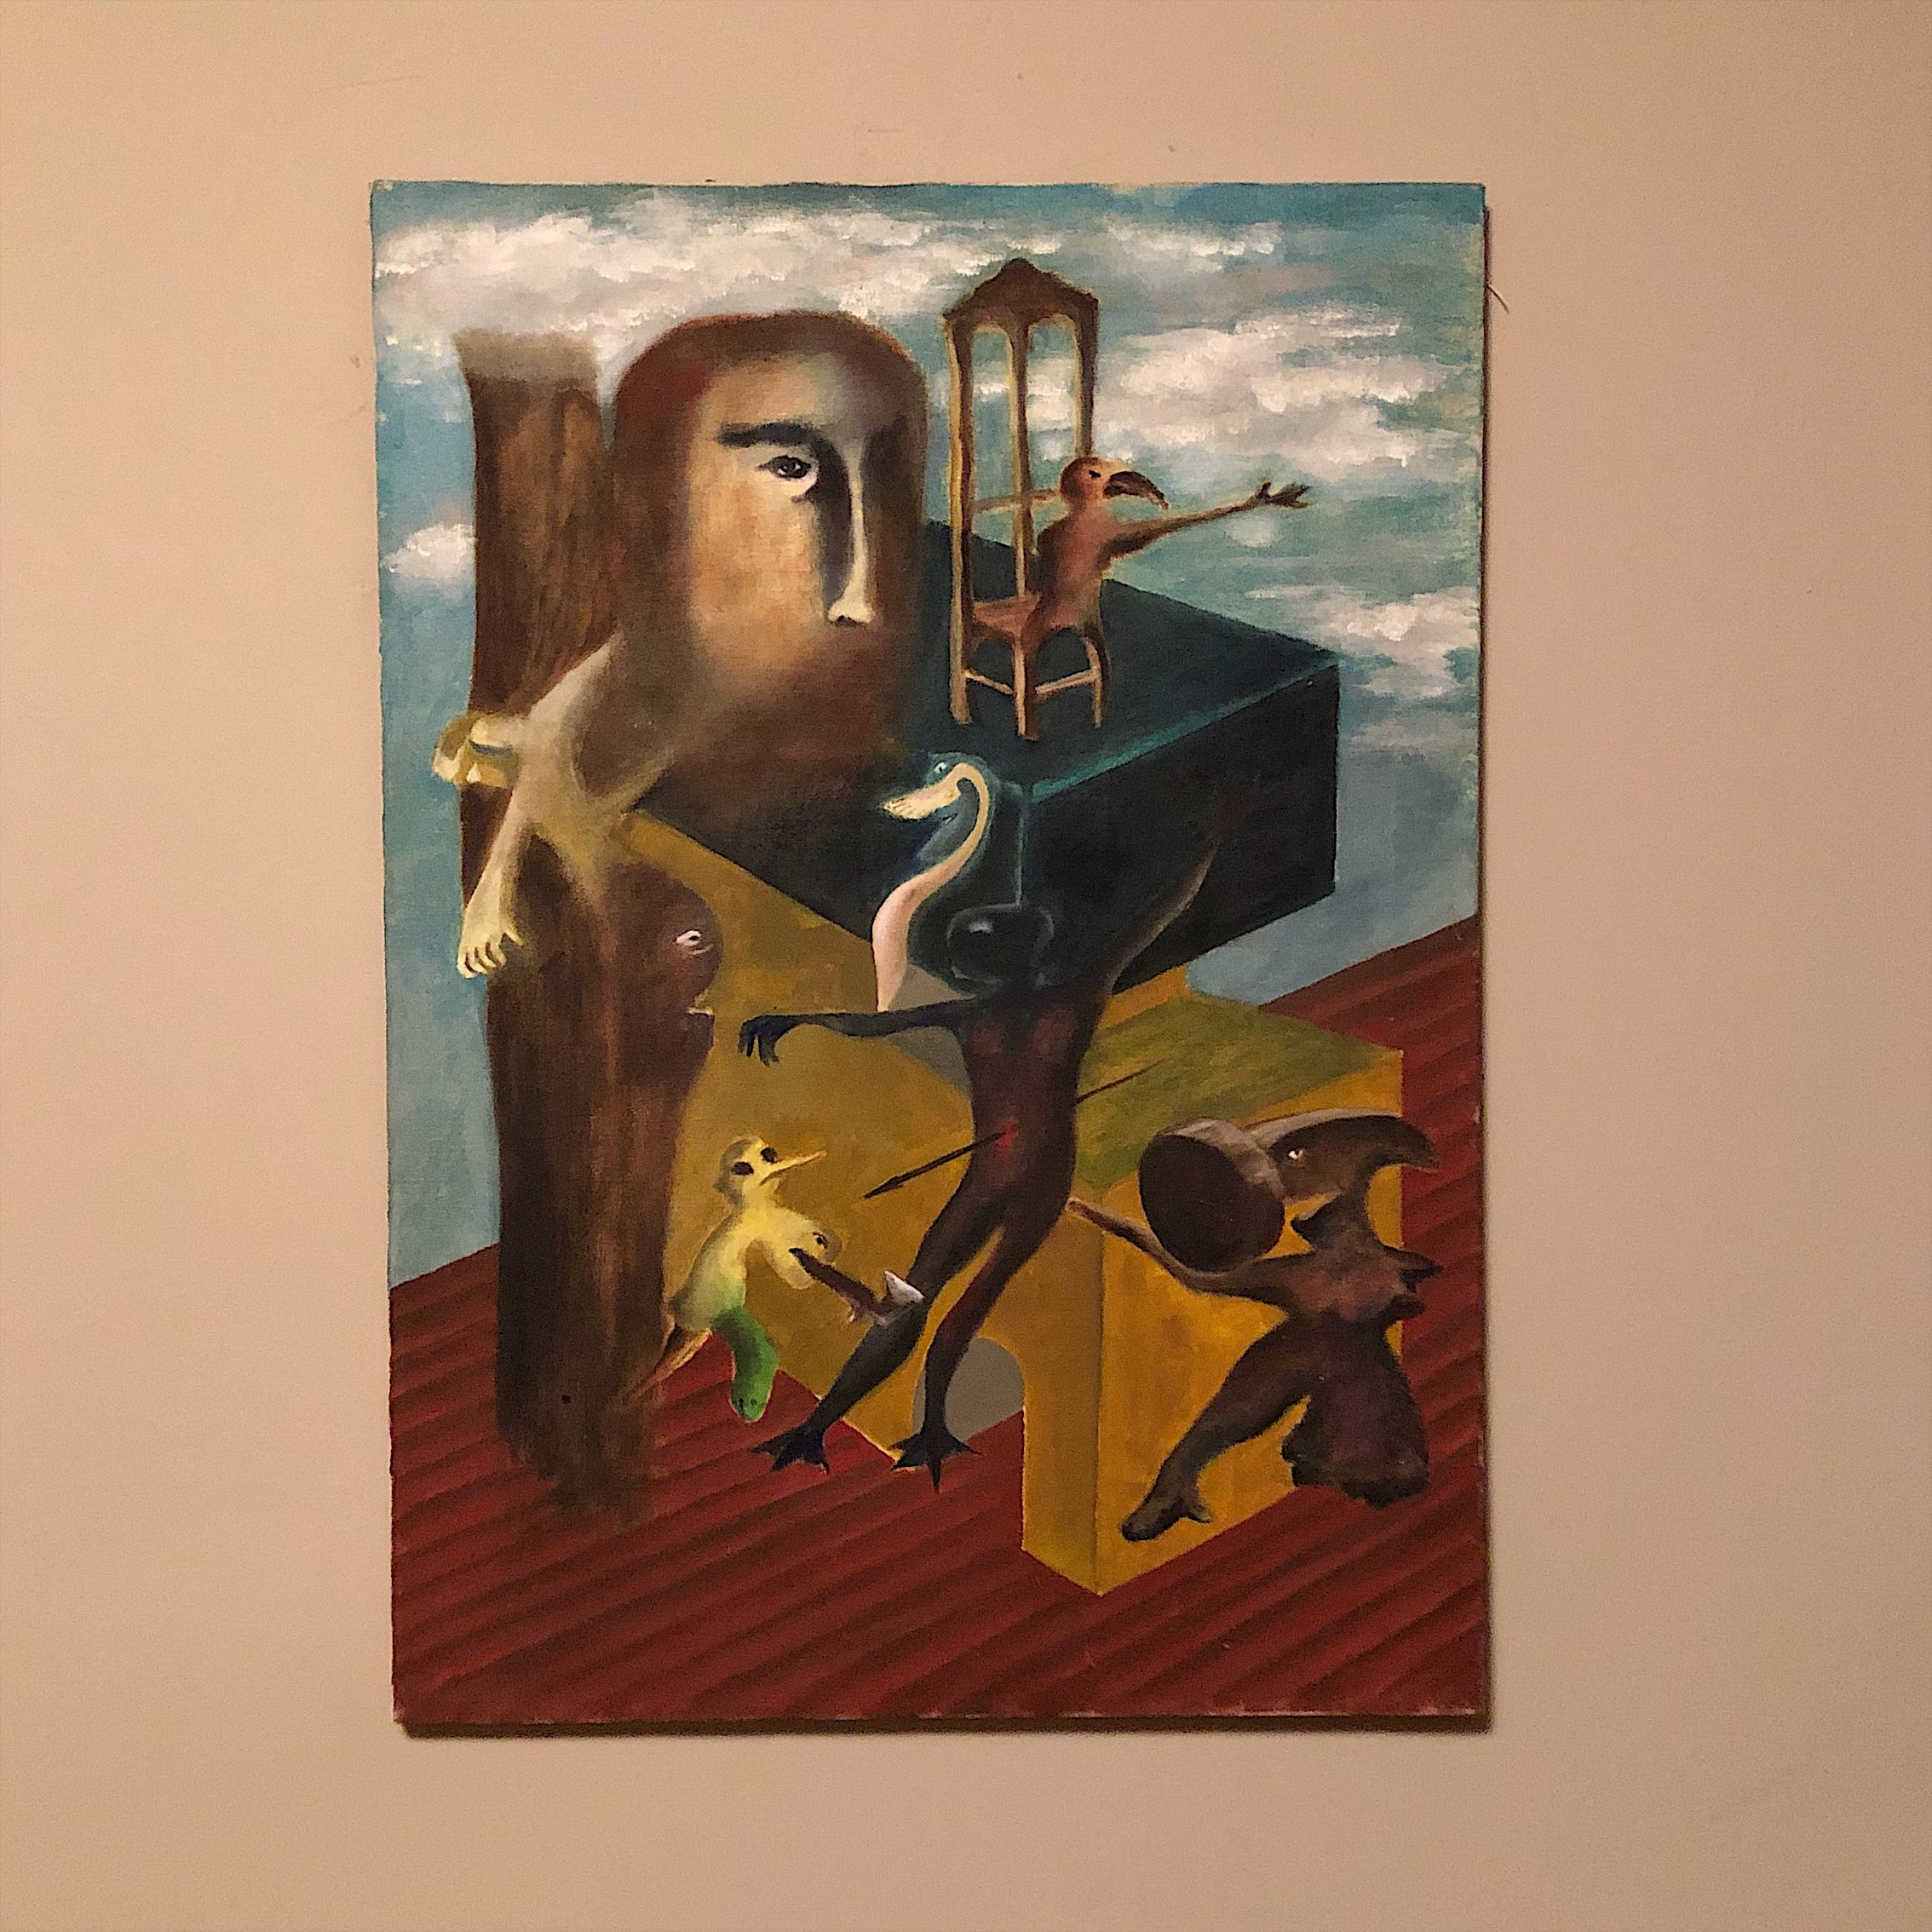 Vintage Surreal Painting from 1960s - Christopher Charles - Surrealist Artwork - Salvador Dali Influence - Outsider Art